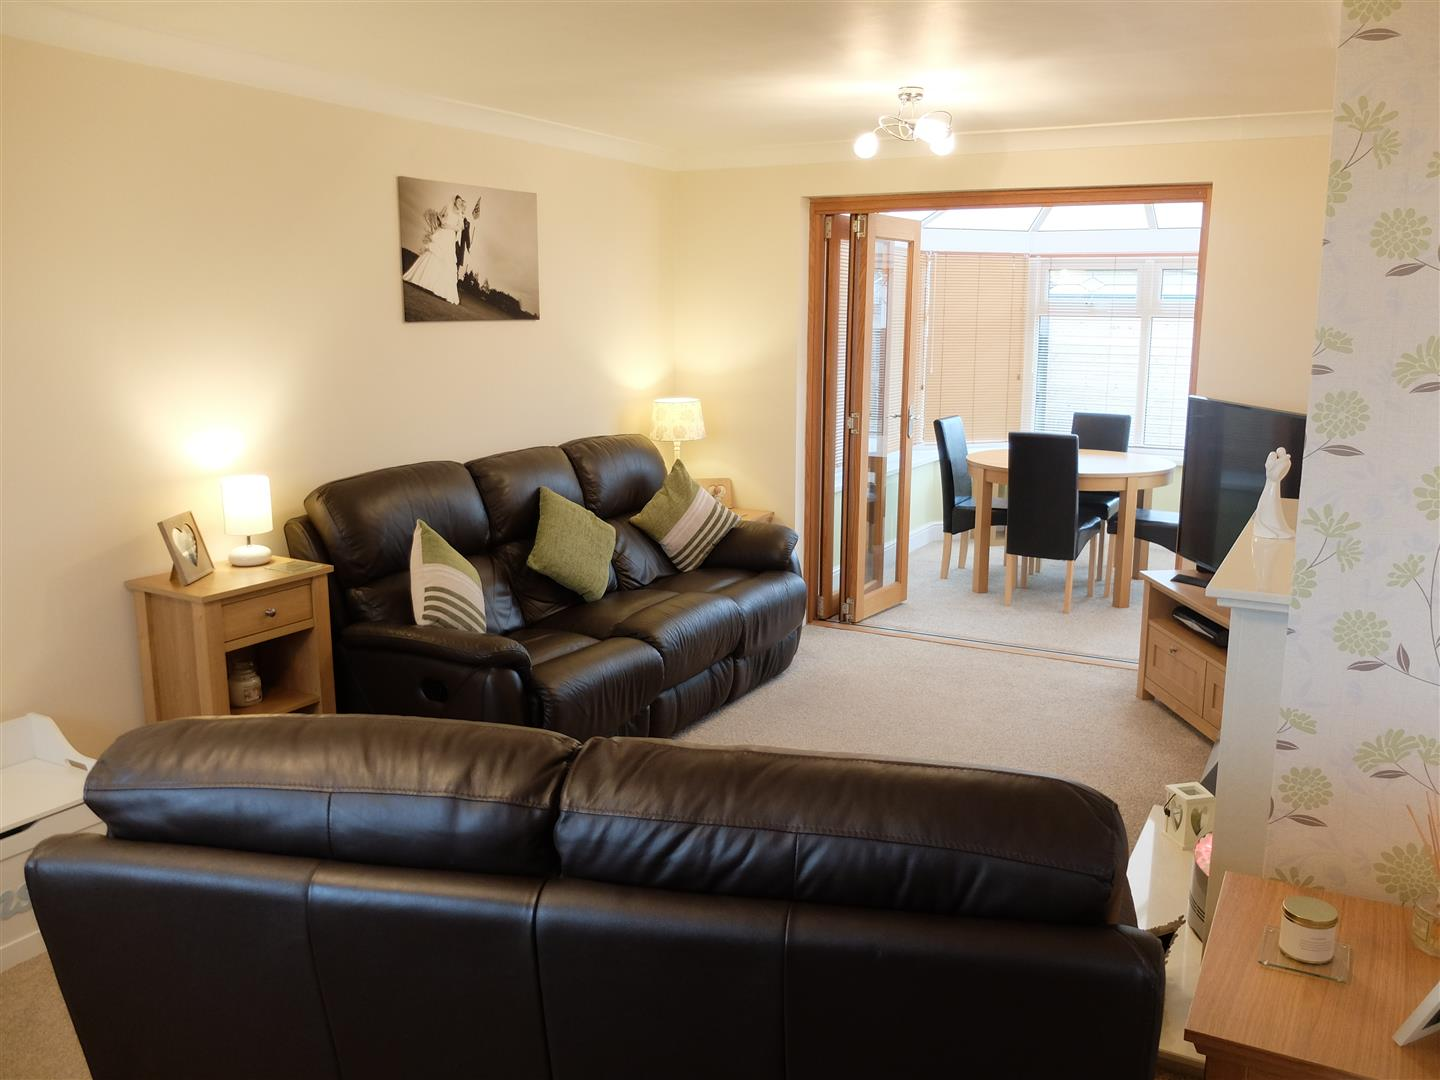 16 Troutbeck Drive Carlisle 2 Bedrooms House - Mid Terrace For Sale 117,995